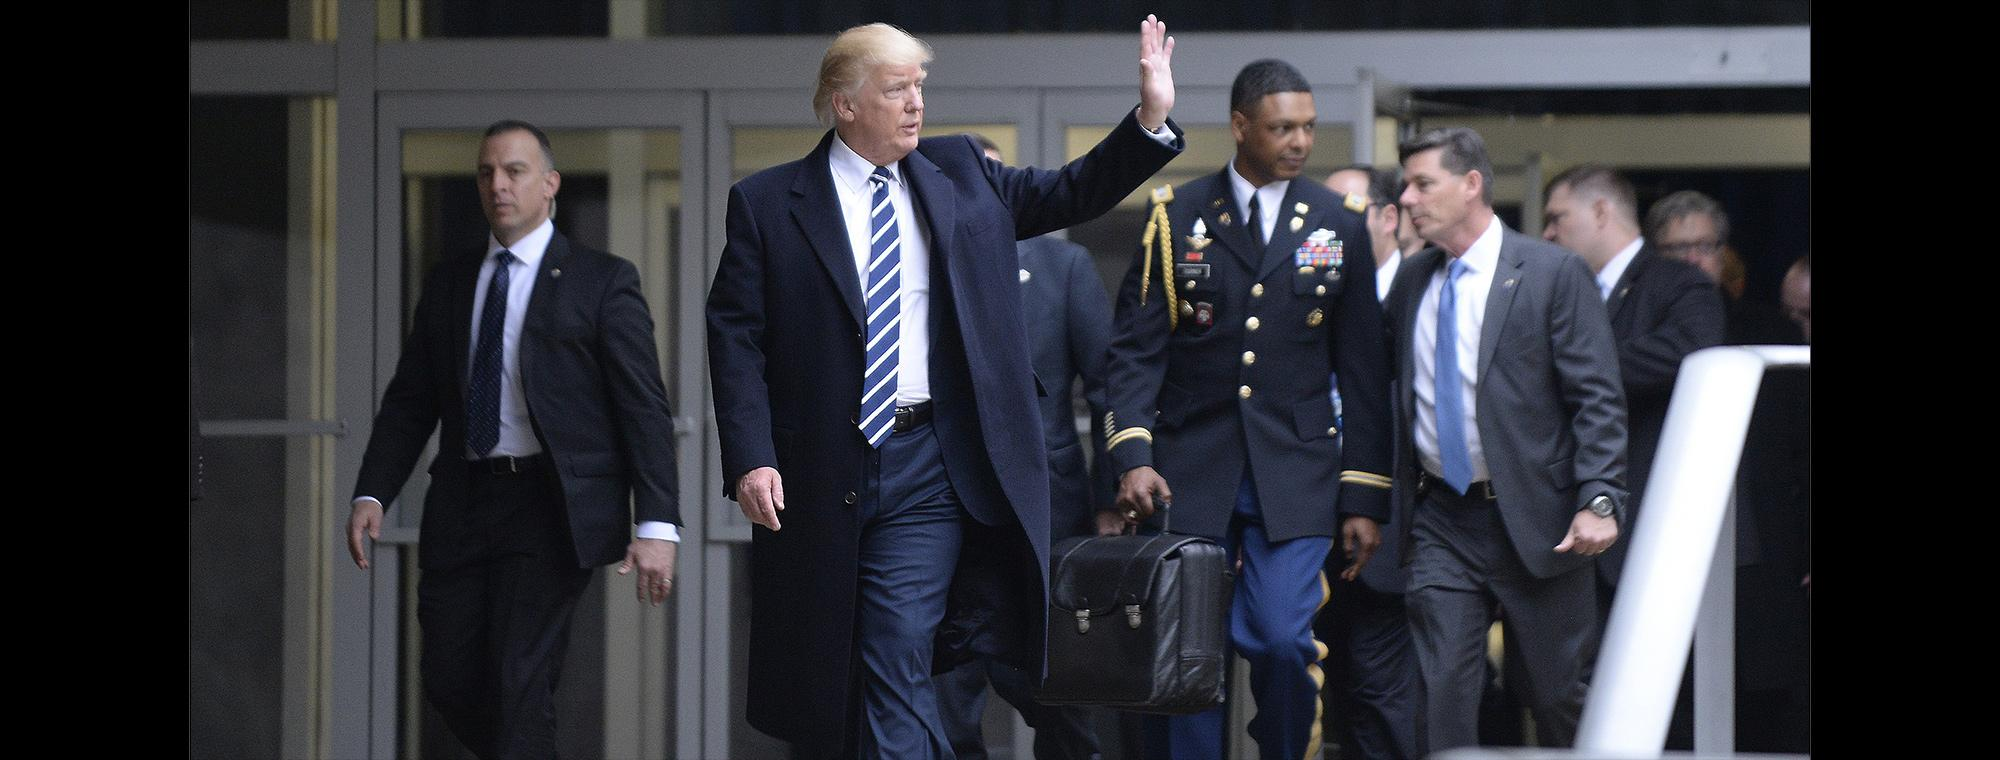 President, aide and football